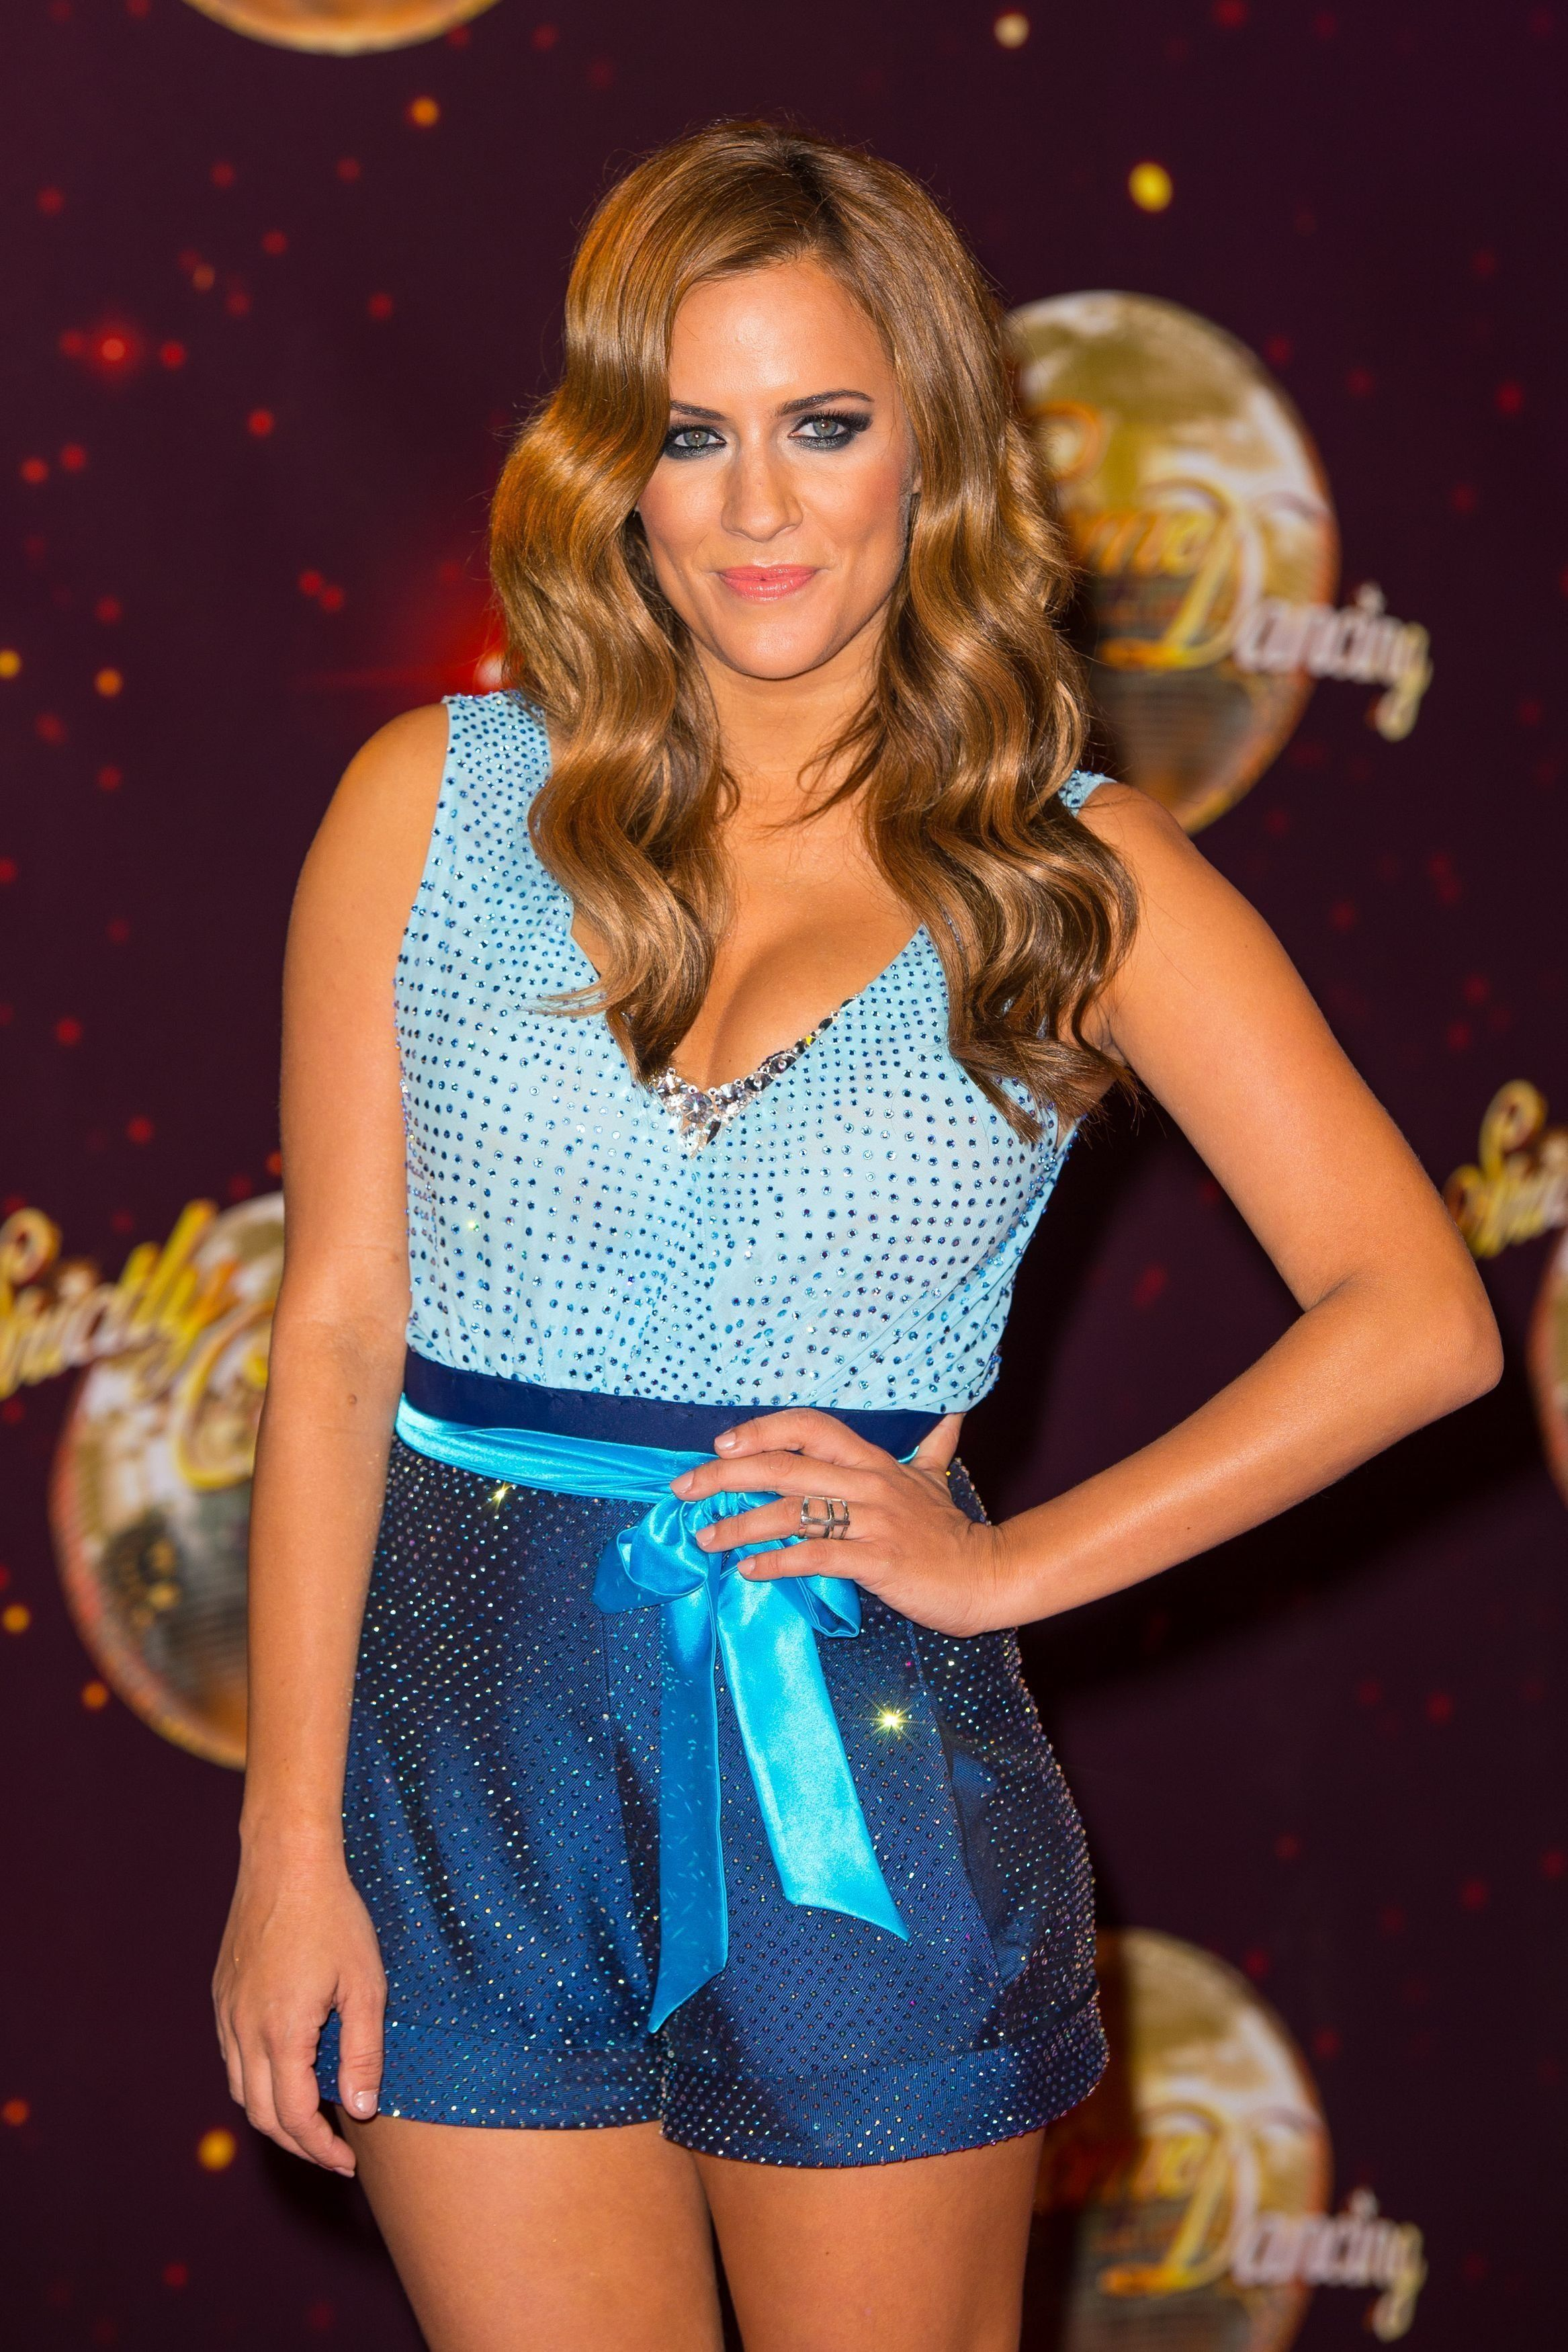 Caroline Flack Has Got A Theory About The 'Strictly Come Dancing' Curse